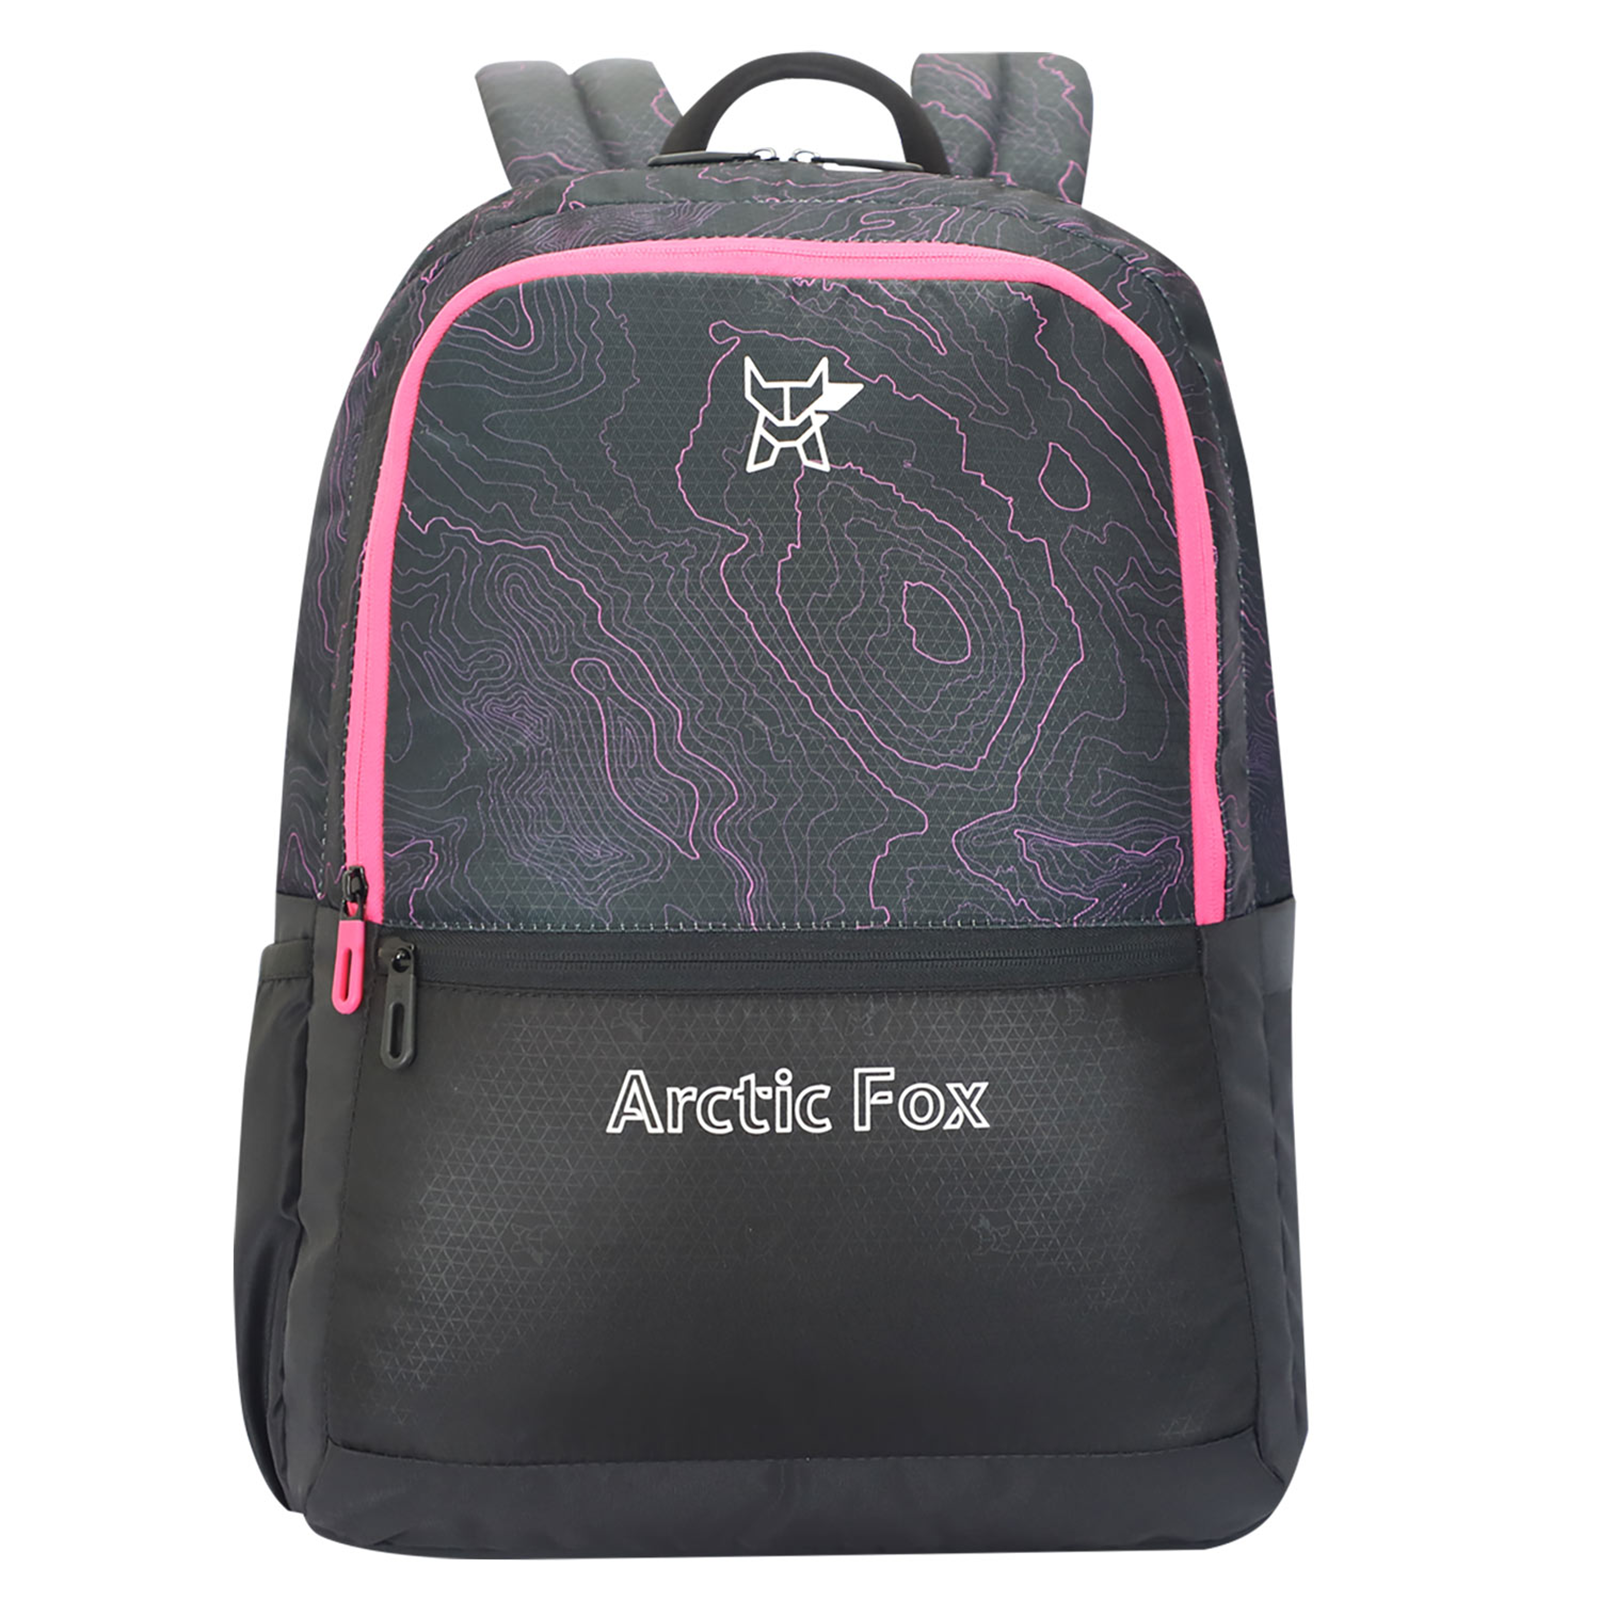 Arctic Fox Topograph 29.5 Litres PU Coated Polyester Backpack (2 Spacious Compartments, FTEBPKPINON083030, Pink)_1